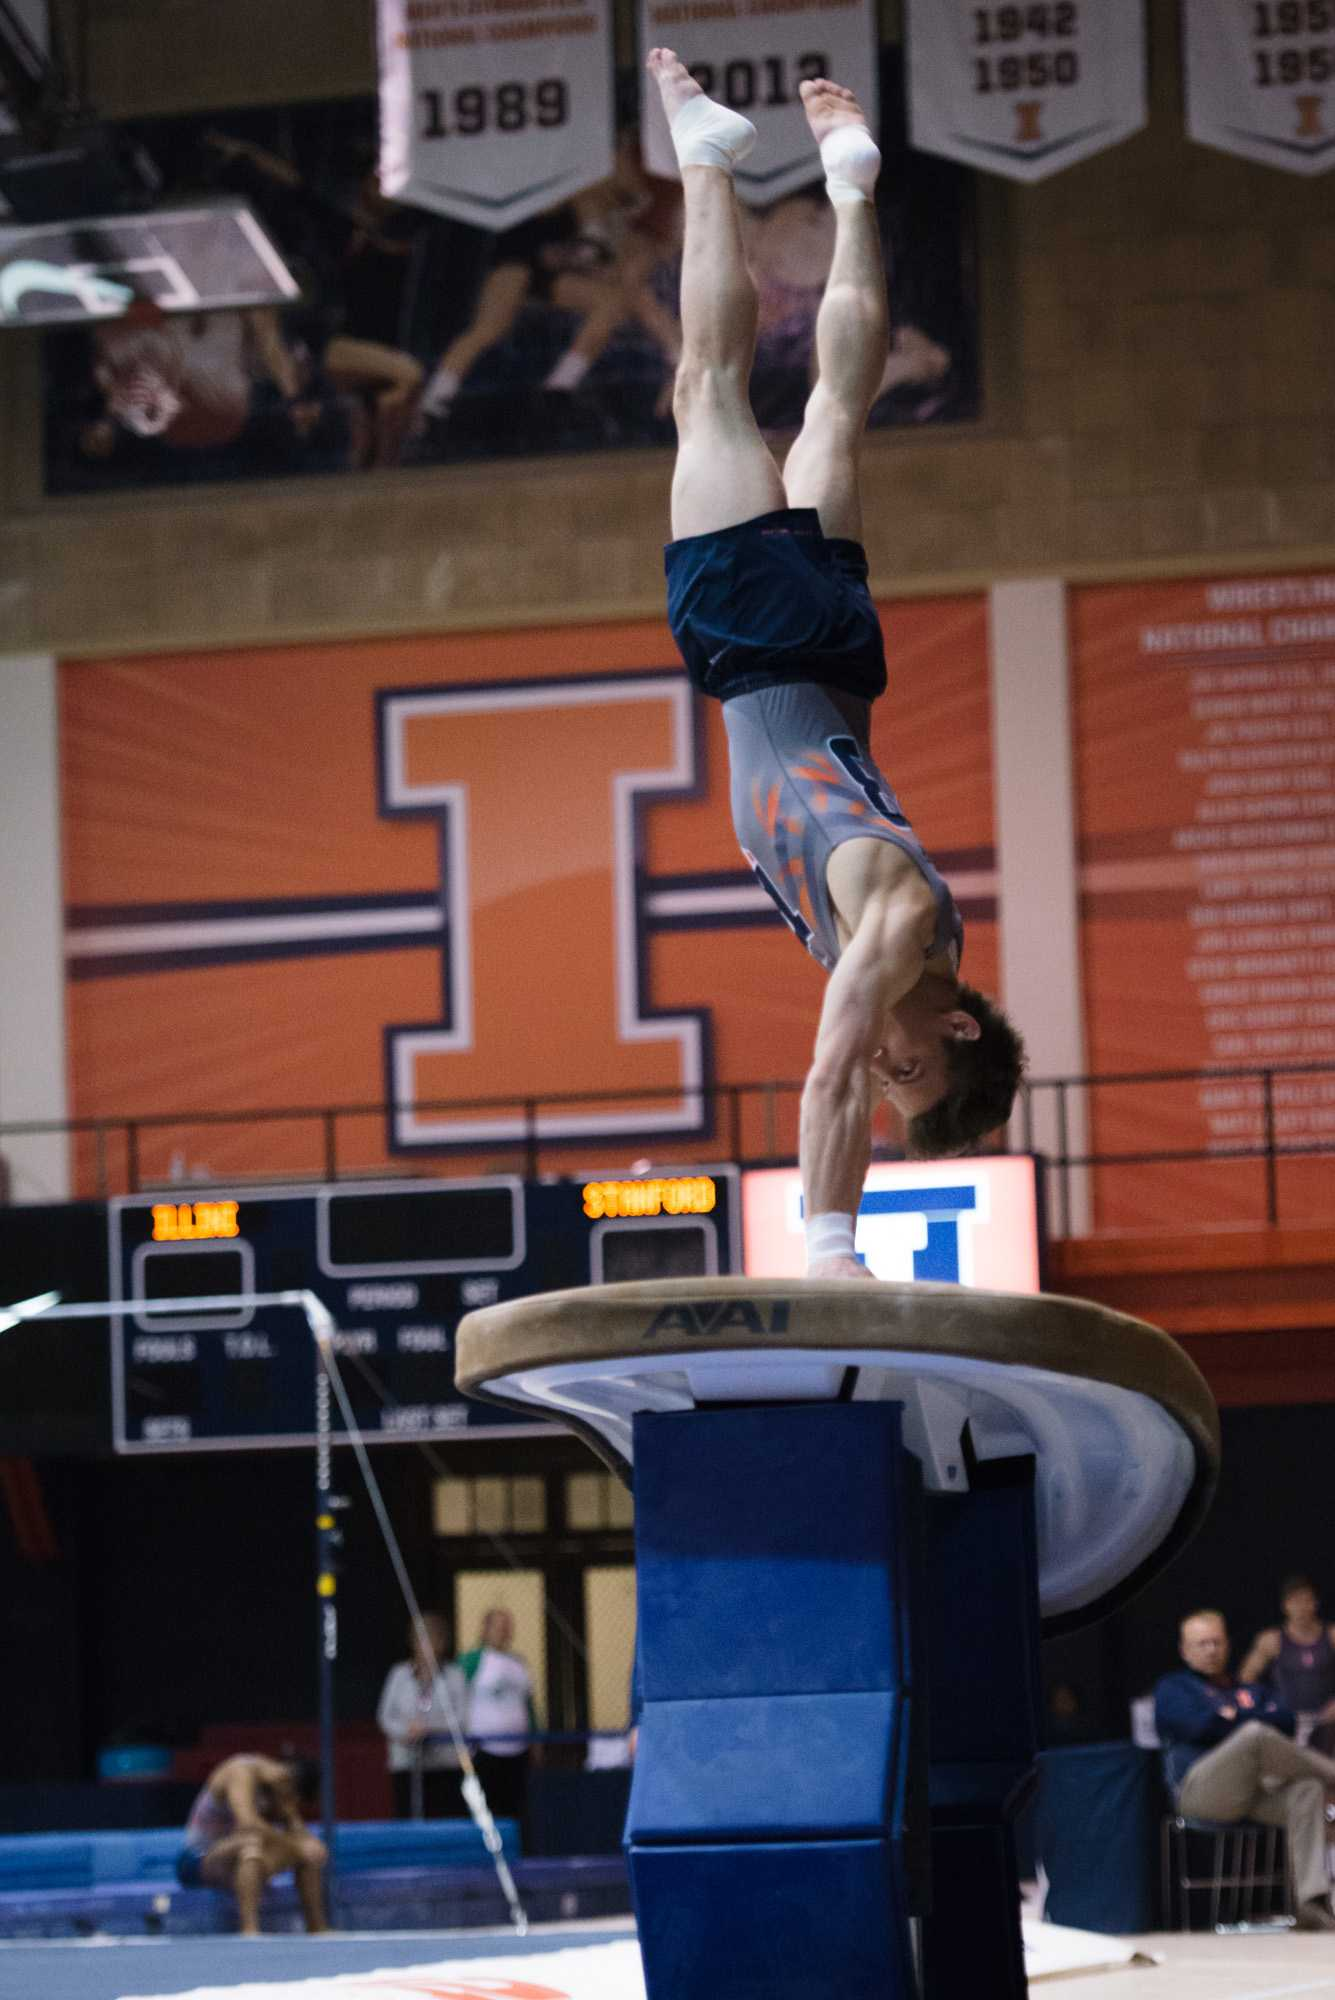 Illinois' Bobby Baker launches off the vault during the meet against Stanford at Huff Hall on Friday, March 6, 2015.The Illini lost 21-9.